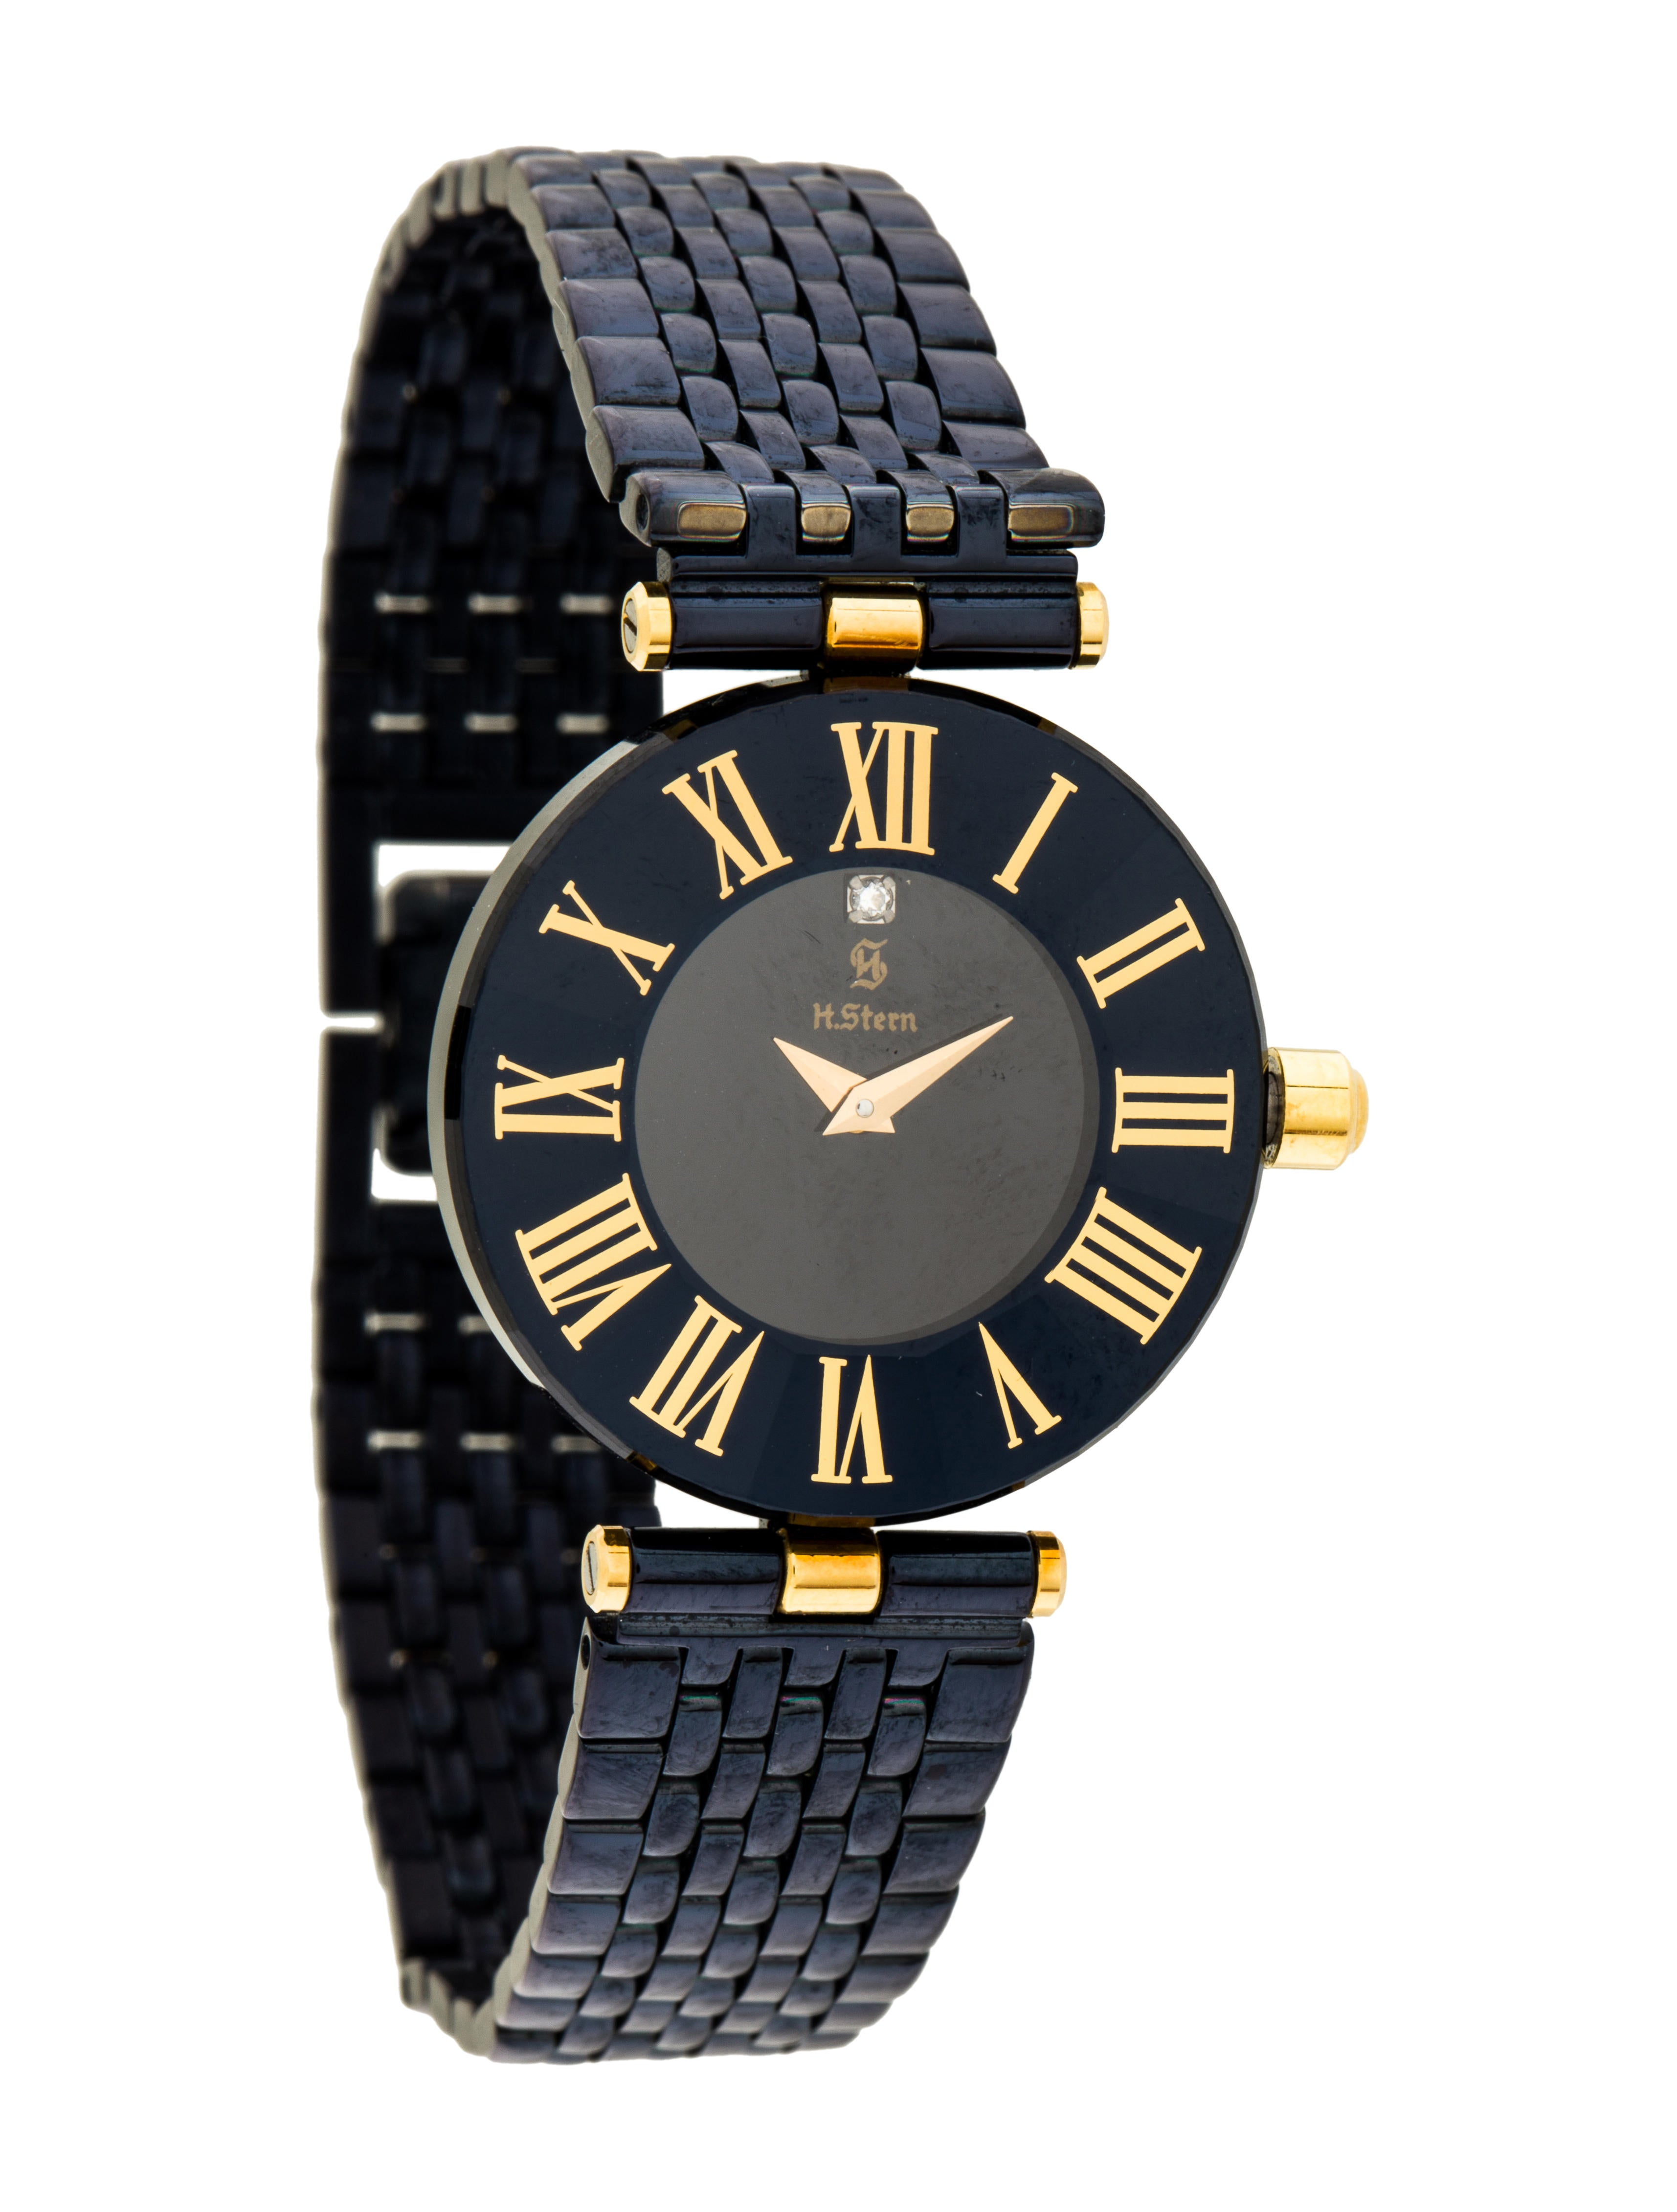 3073f53e5 H.Stern Sapphire Collection Watch - Bracelet - HST20440 | The RealReal